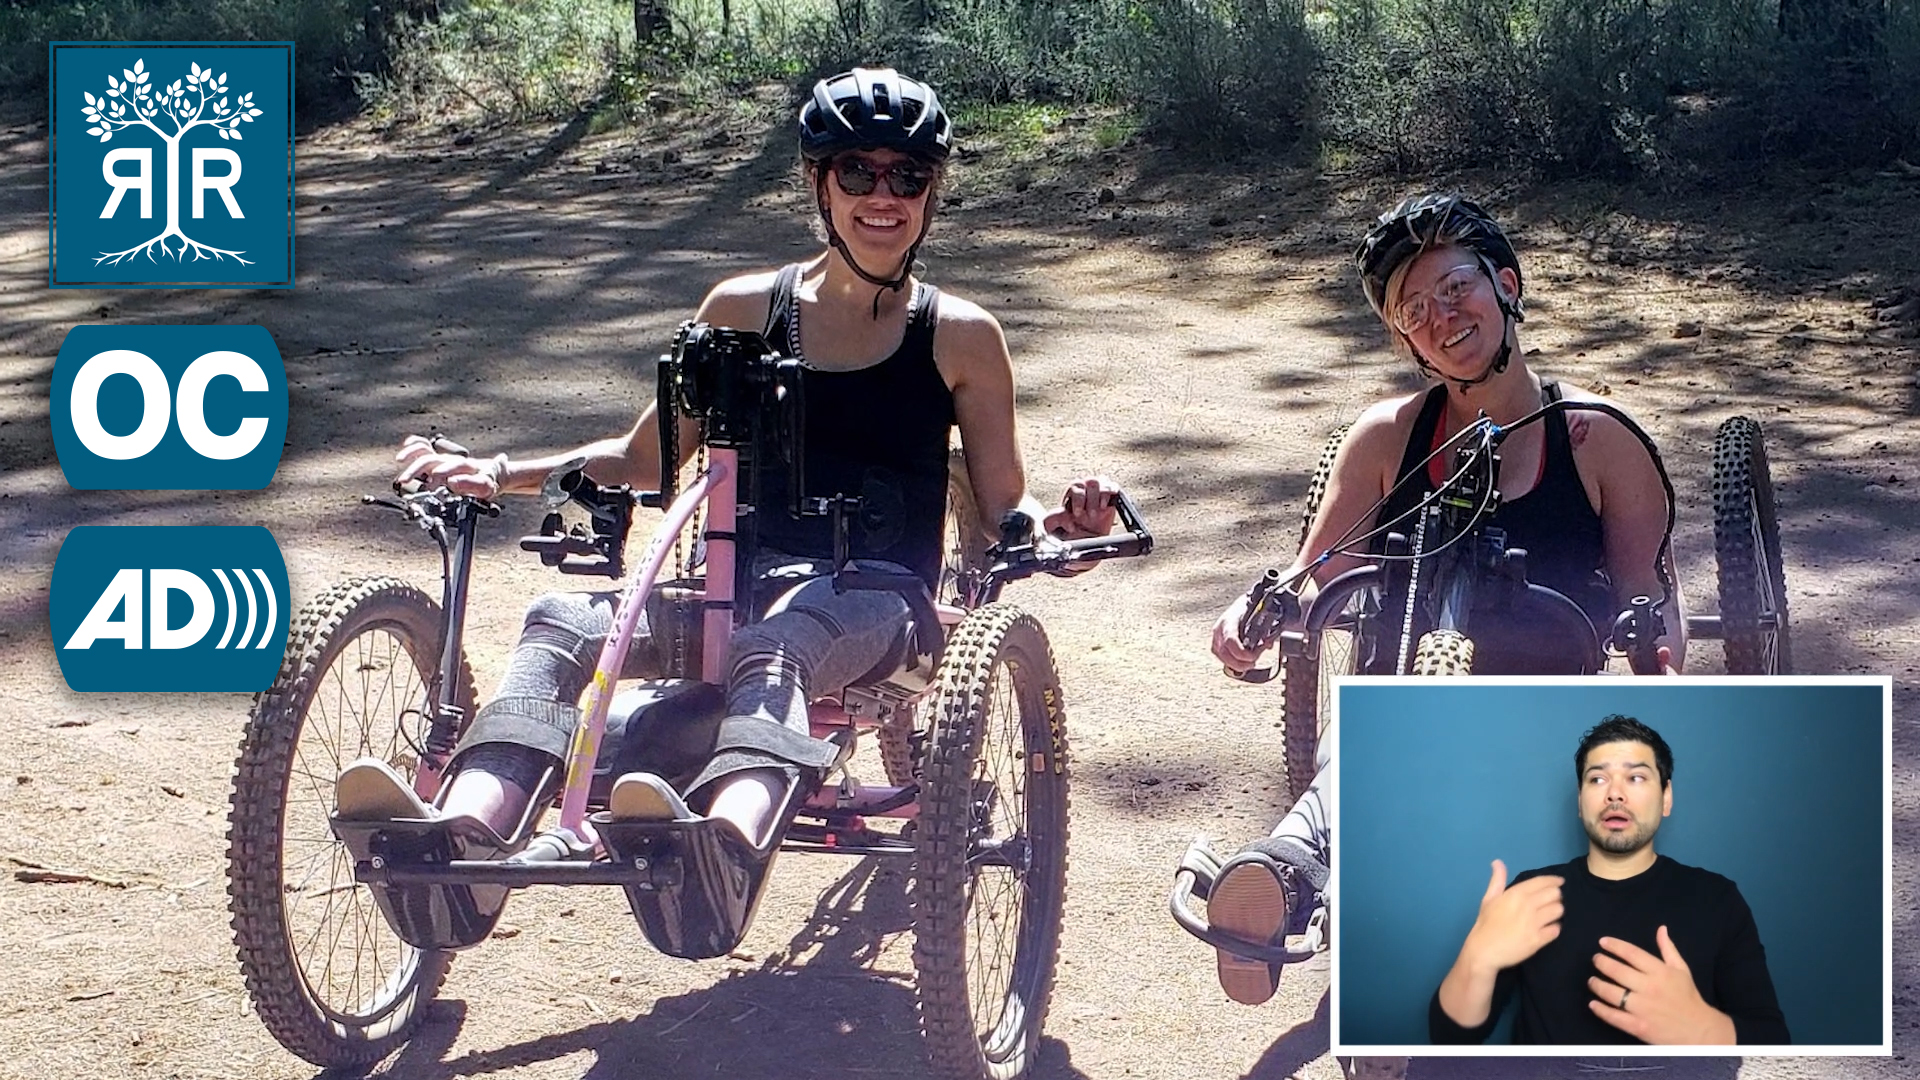 Thumbnail that shows two people smiling while seated in mountain bike hand cycles. There is an ASL interpreter in the lower right. There is the Rooted in Rights logo, an open captions icon, and an audio description icon in the upper left.